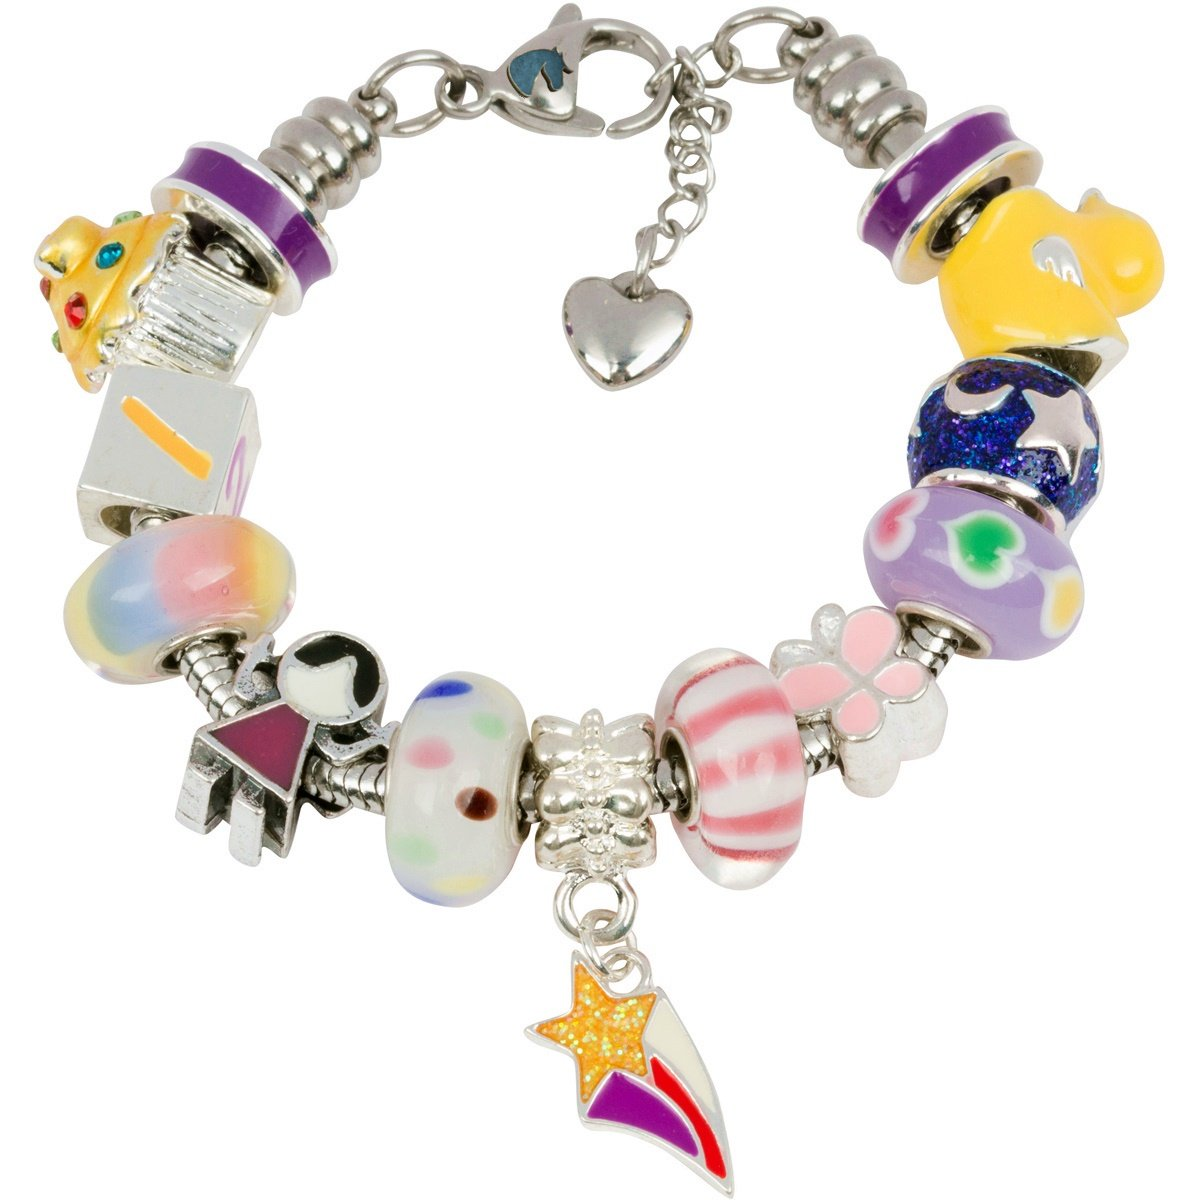 Timeline Treasures European Charm Bracelet With Charms For Girls, Stainless Steel Snake Chain, Nursery Rhyme, Purple 6.5 Inch (16.5cm)